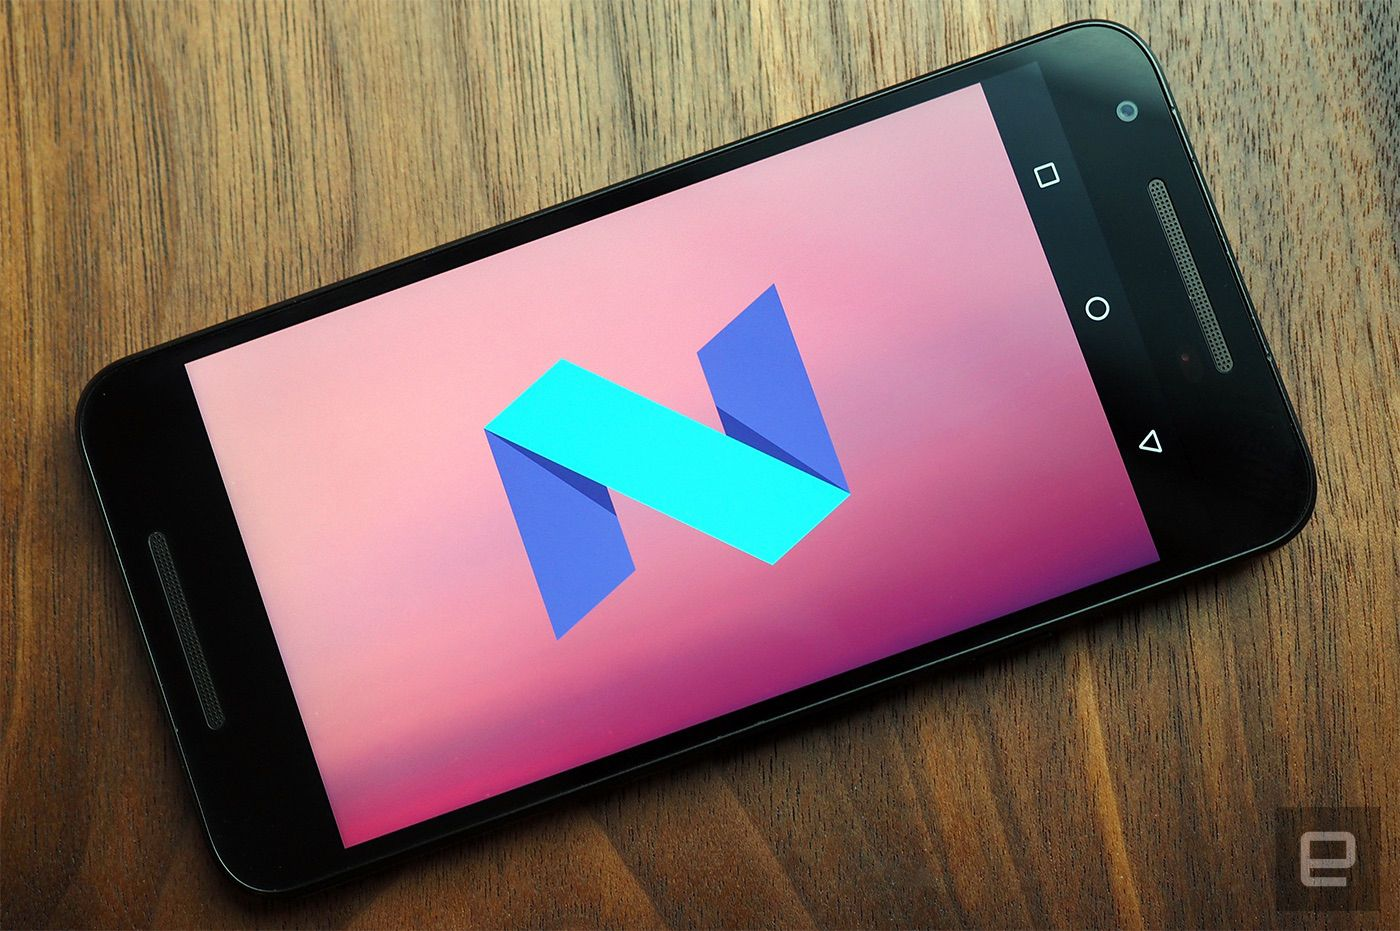 Android 7.0 Nougat arrives today Android, Phone, Technology